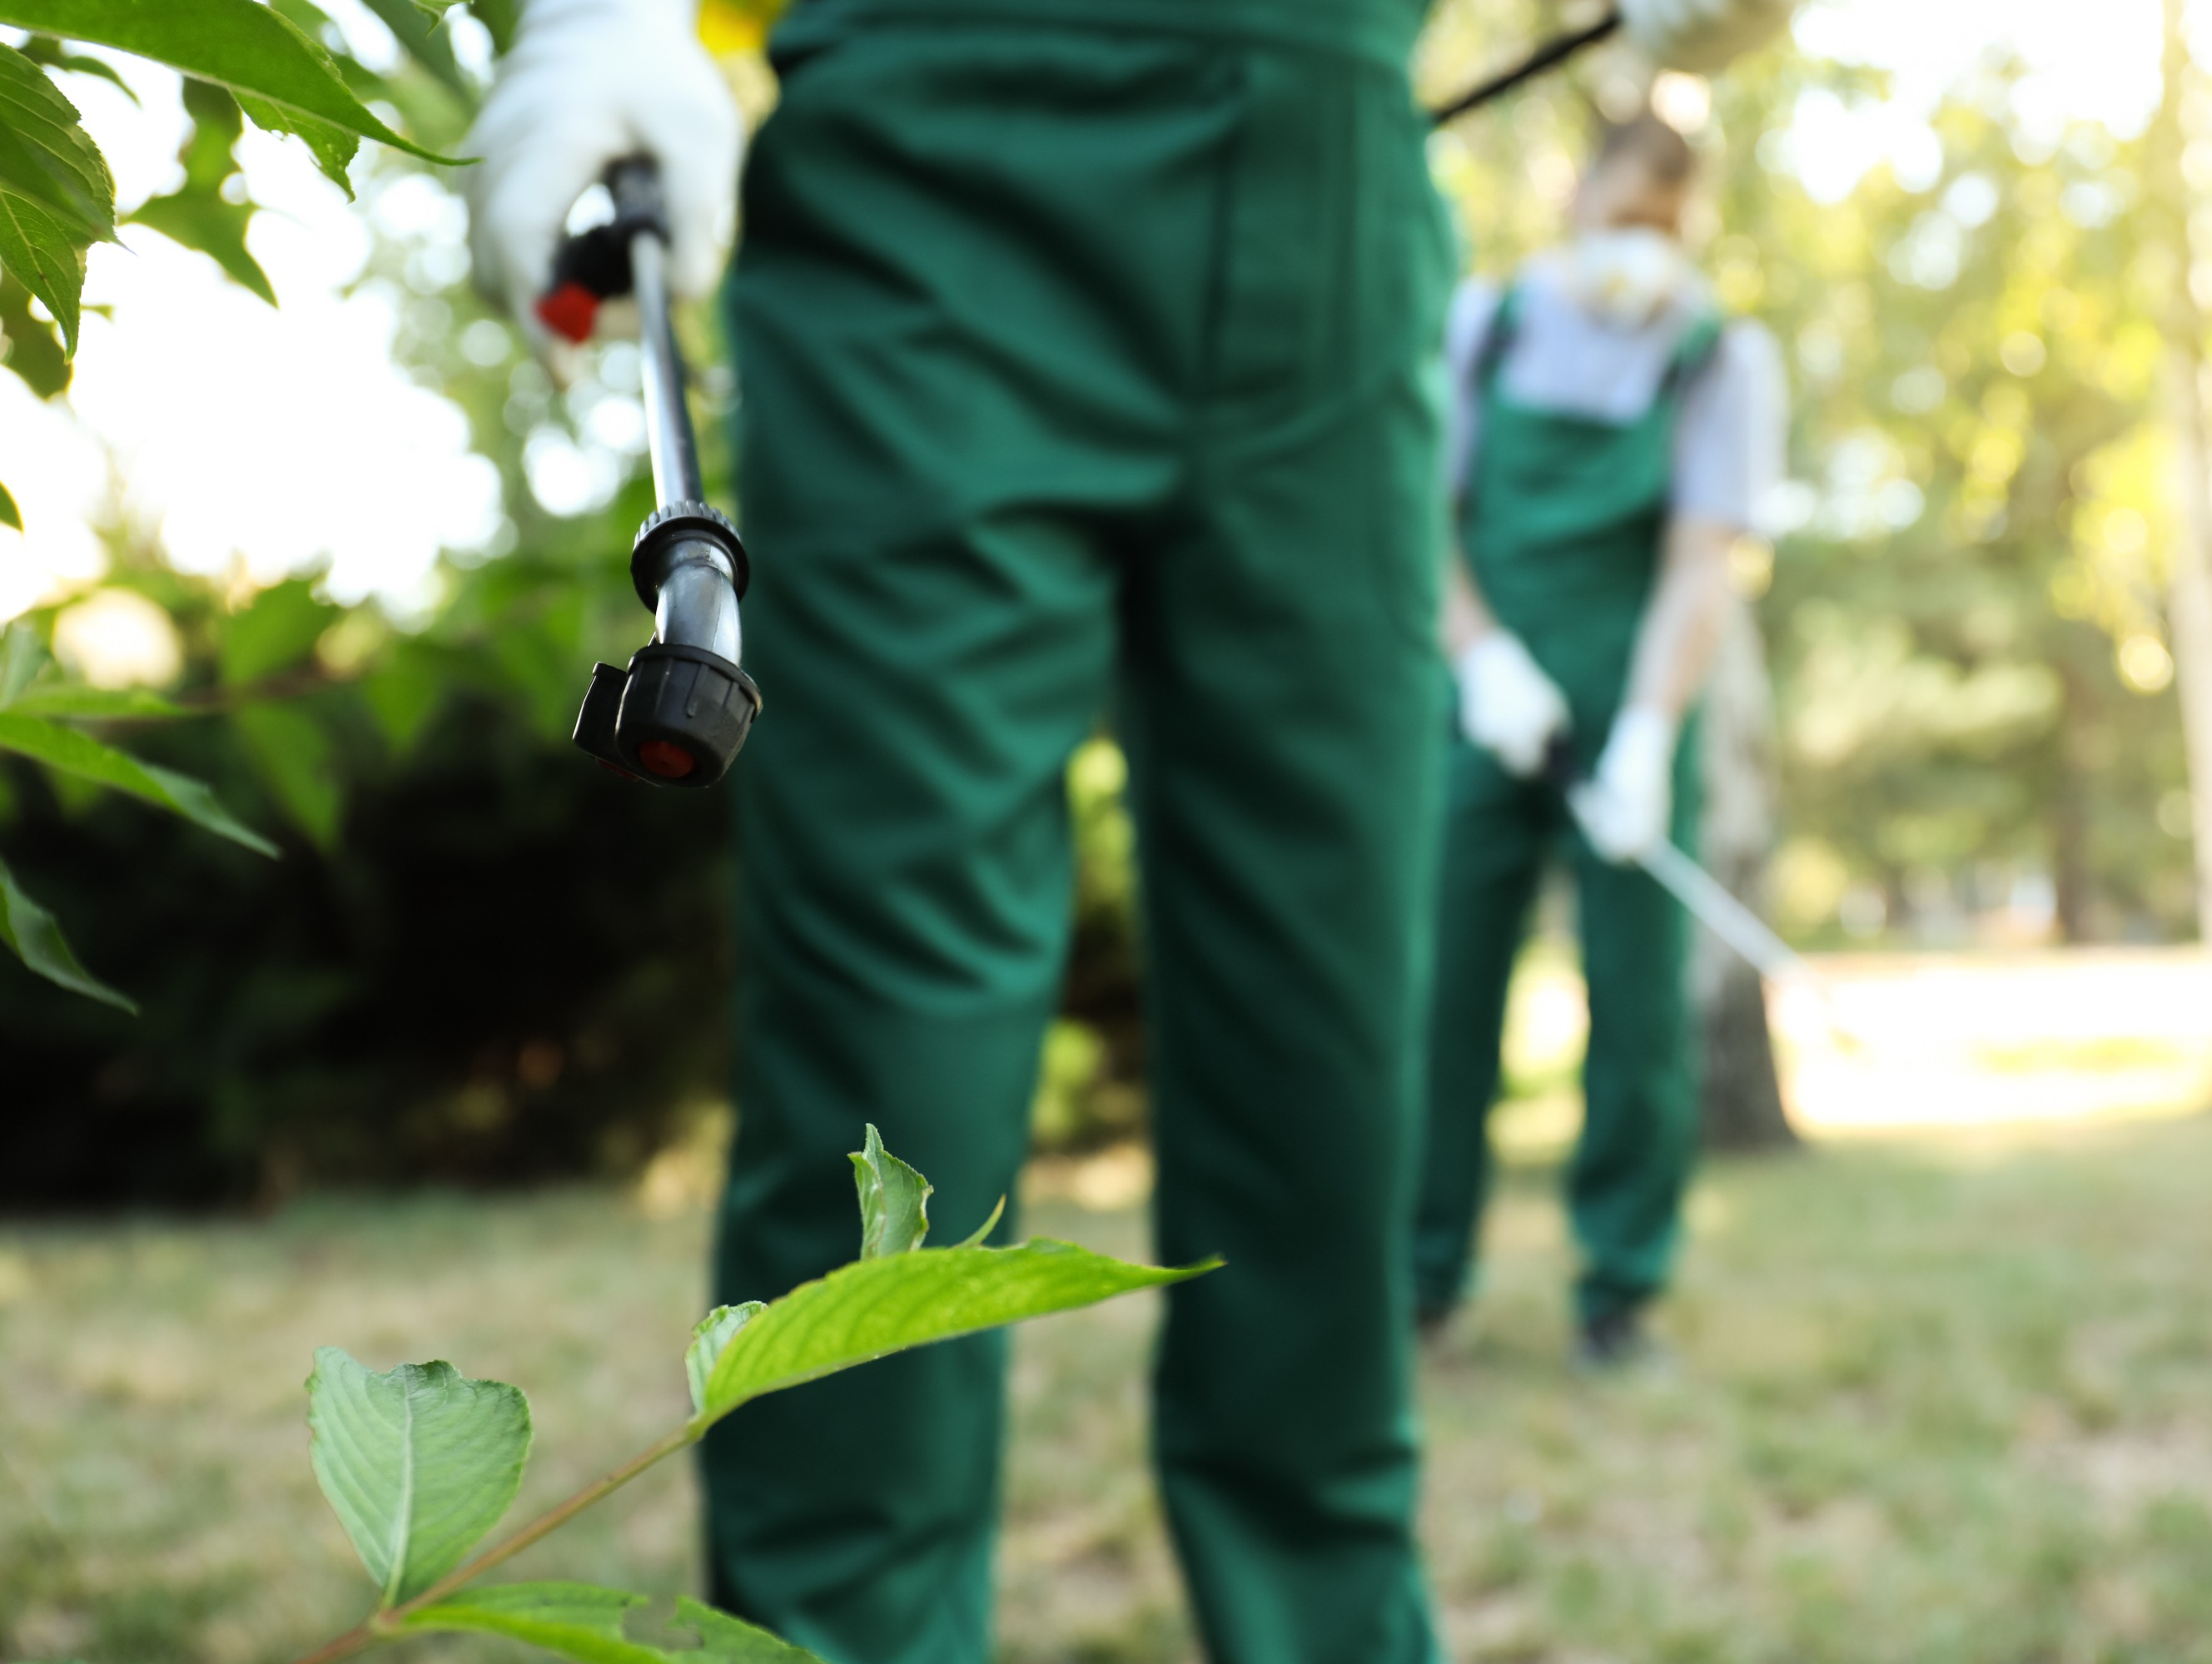 A pest control specialist wearing green overalls uses a pest control want to spray solution on a green bush.